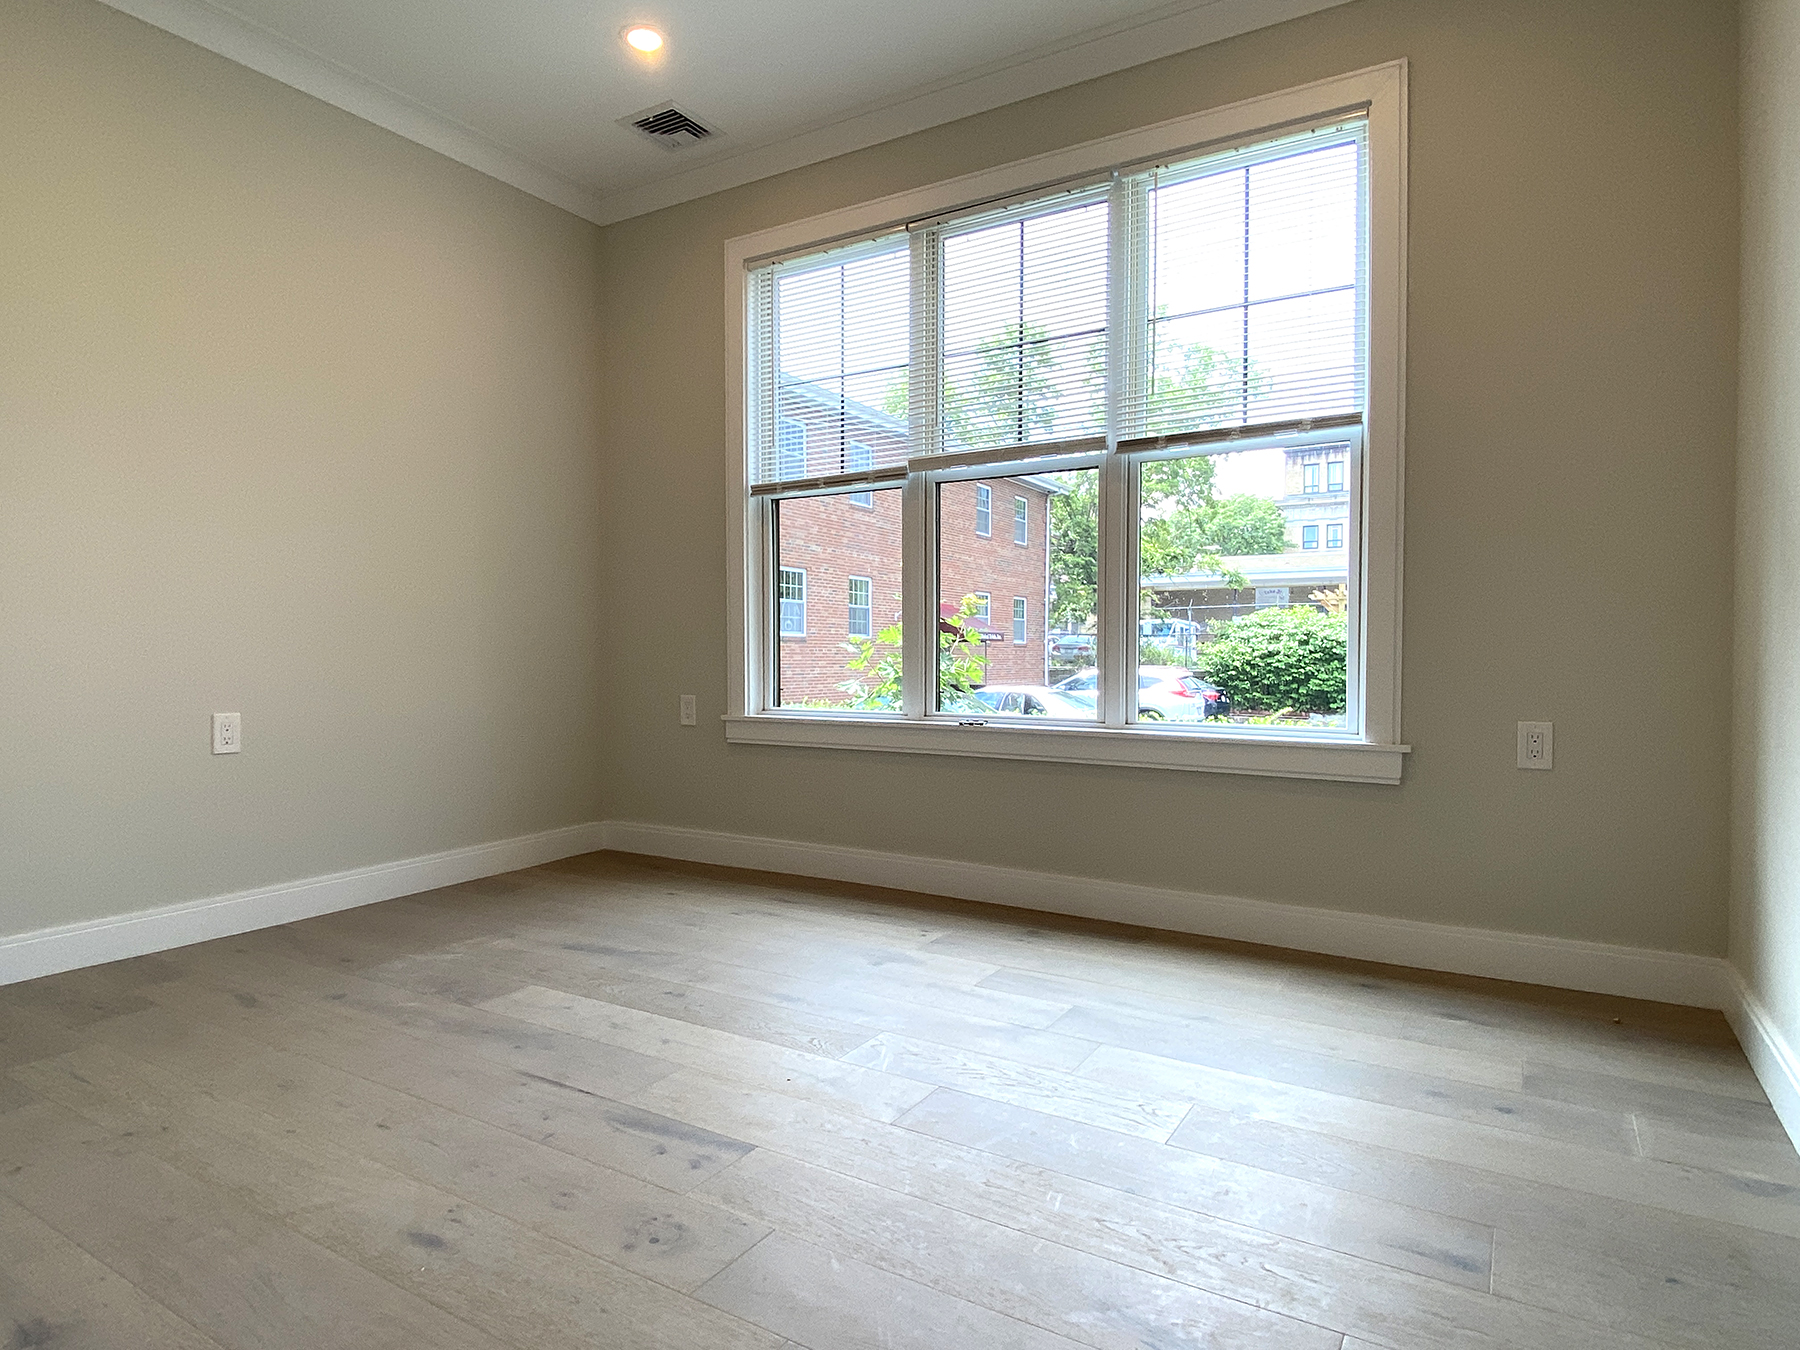 2 Beds, 2 Baths apartment in Boston for $2,800